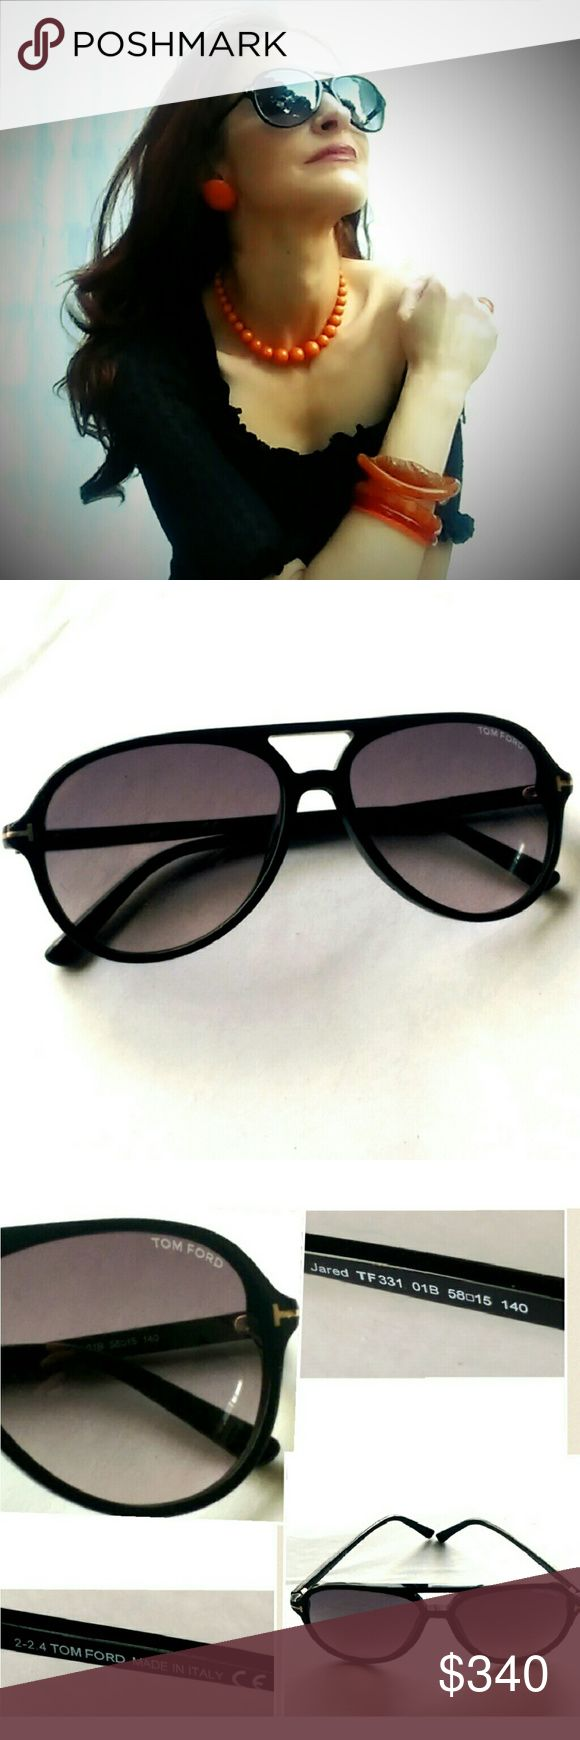 "Tom Ford Jared Black Aviator Sunnies- NEW! Shiny black acetate frame with gold metal ""T"" logo and Polarized gradient grey lenses. 100% UVA/UVB protection. Made in Italy. Guaranteed authentic in Tom Ford velvet case. NEW. Tom Ford Accessories Sunglasses"